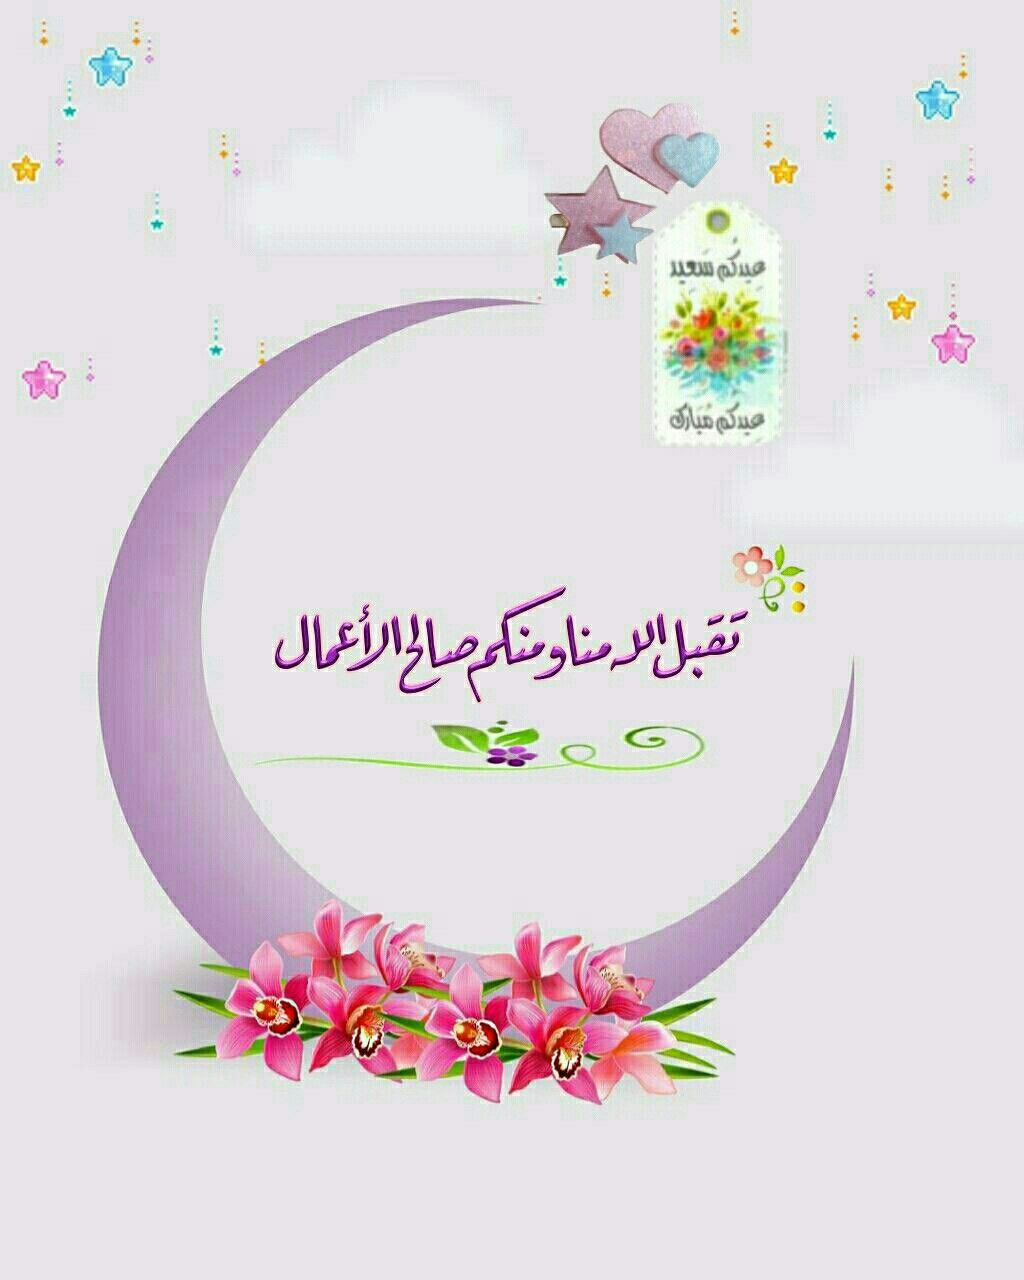 Taqabbalallahu Minna Wa Minkum Wa Taqabbal Ya Karim Arab : taqabbalallahu, minna, minkum, taqabbal, karim, Taqabbal, Allaahu, Minna, Minkum, Mubarak, Greetings,, Stickers,, Greetings